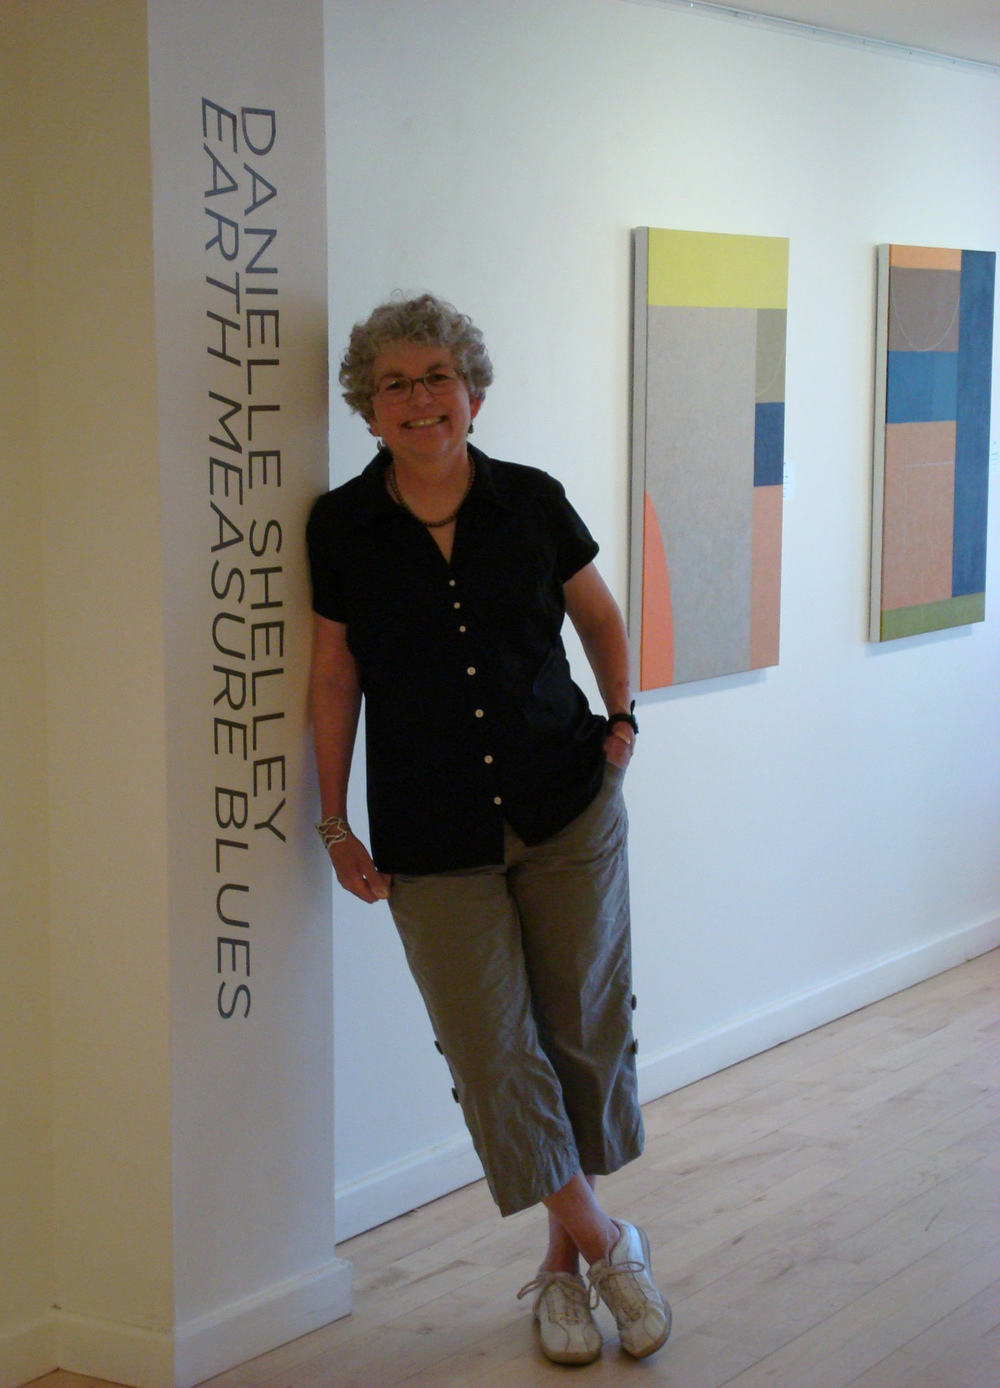 Danielle Shelley at her solo show at David Richard gallery in Santa Fe, May 2012